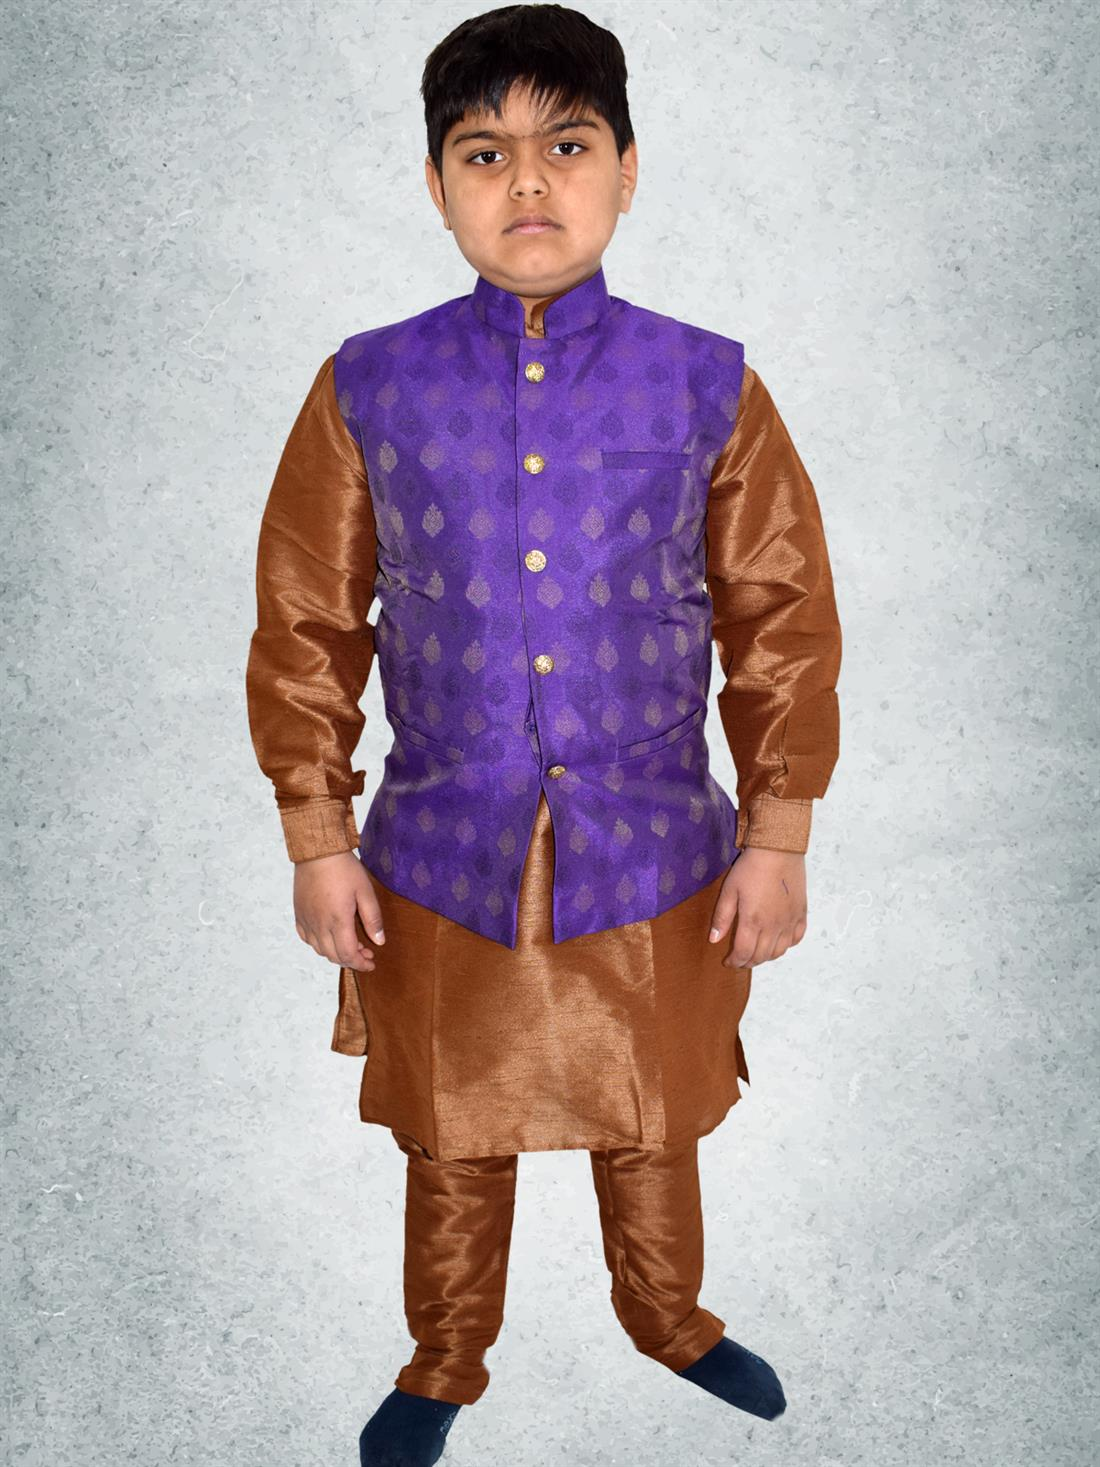 Boys Readymade Suits